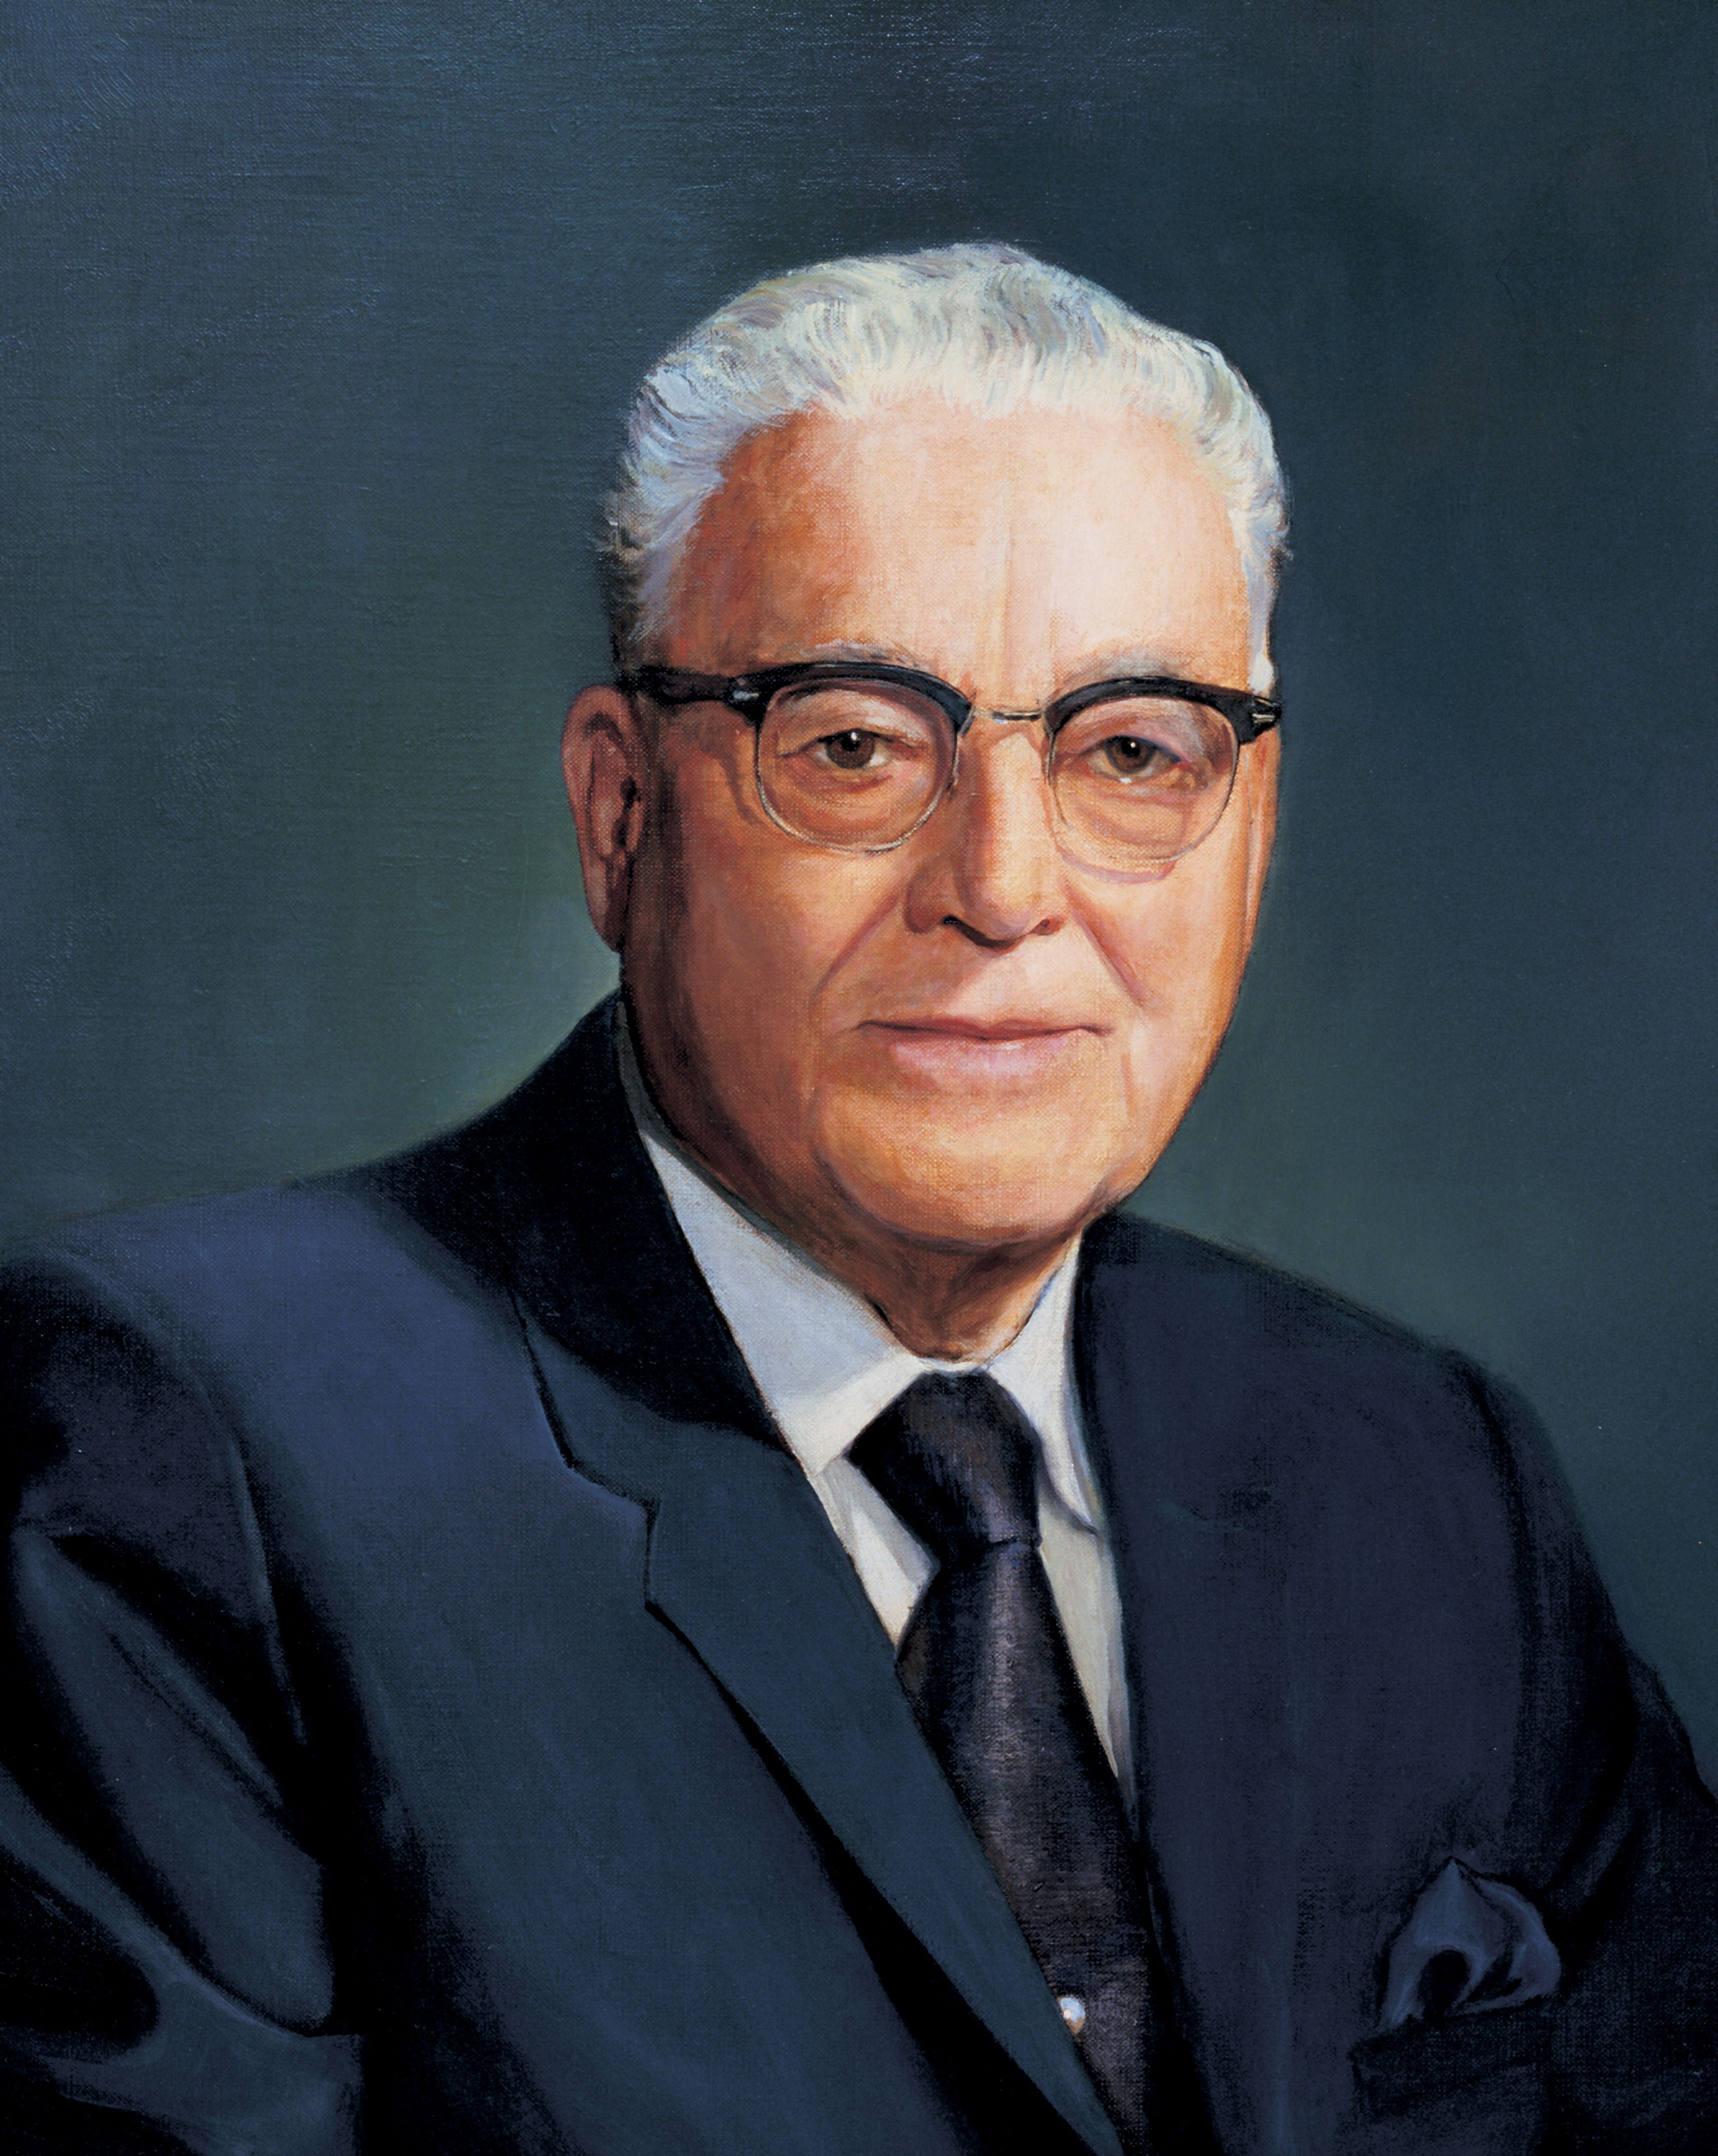 Harold B. Lee, by David Ahrnsbrak; GAK 516; Our Heritage, 123–24. President Harold B. Lee served as the 11th President of the Church from 1972 to 1973.